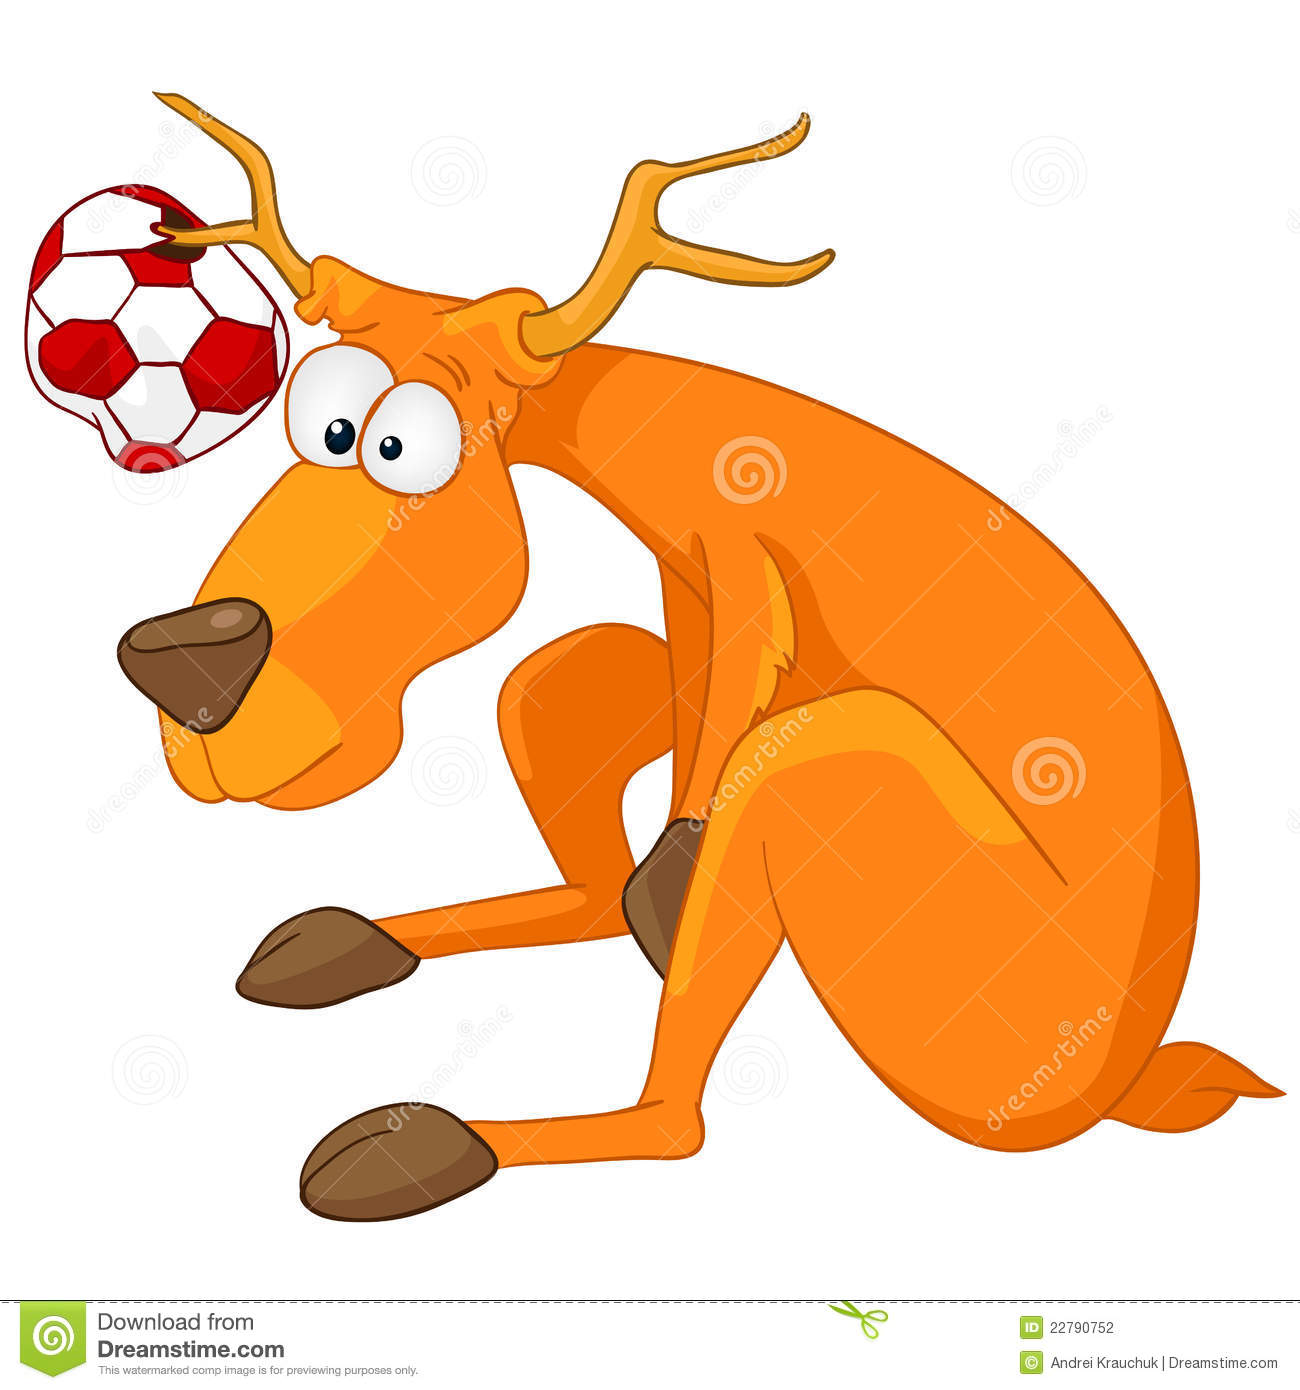 Rudolph The Red Nosed Reindeer Jokes